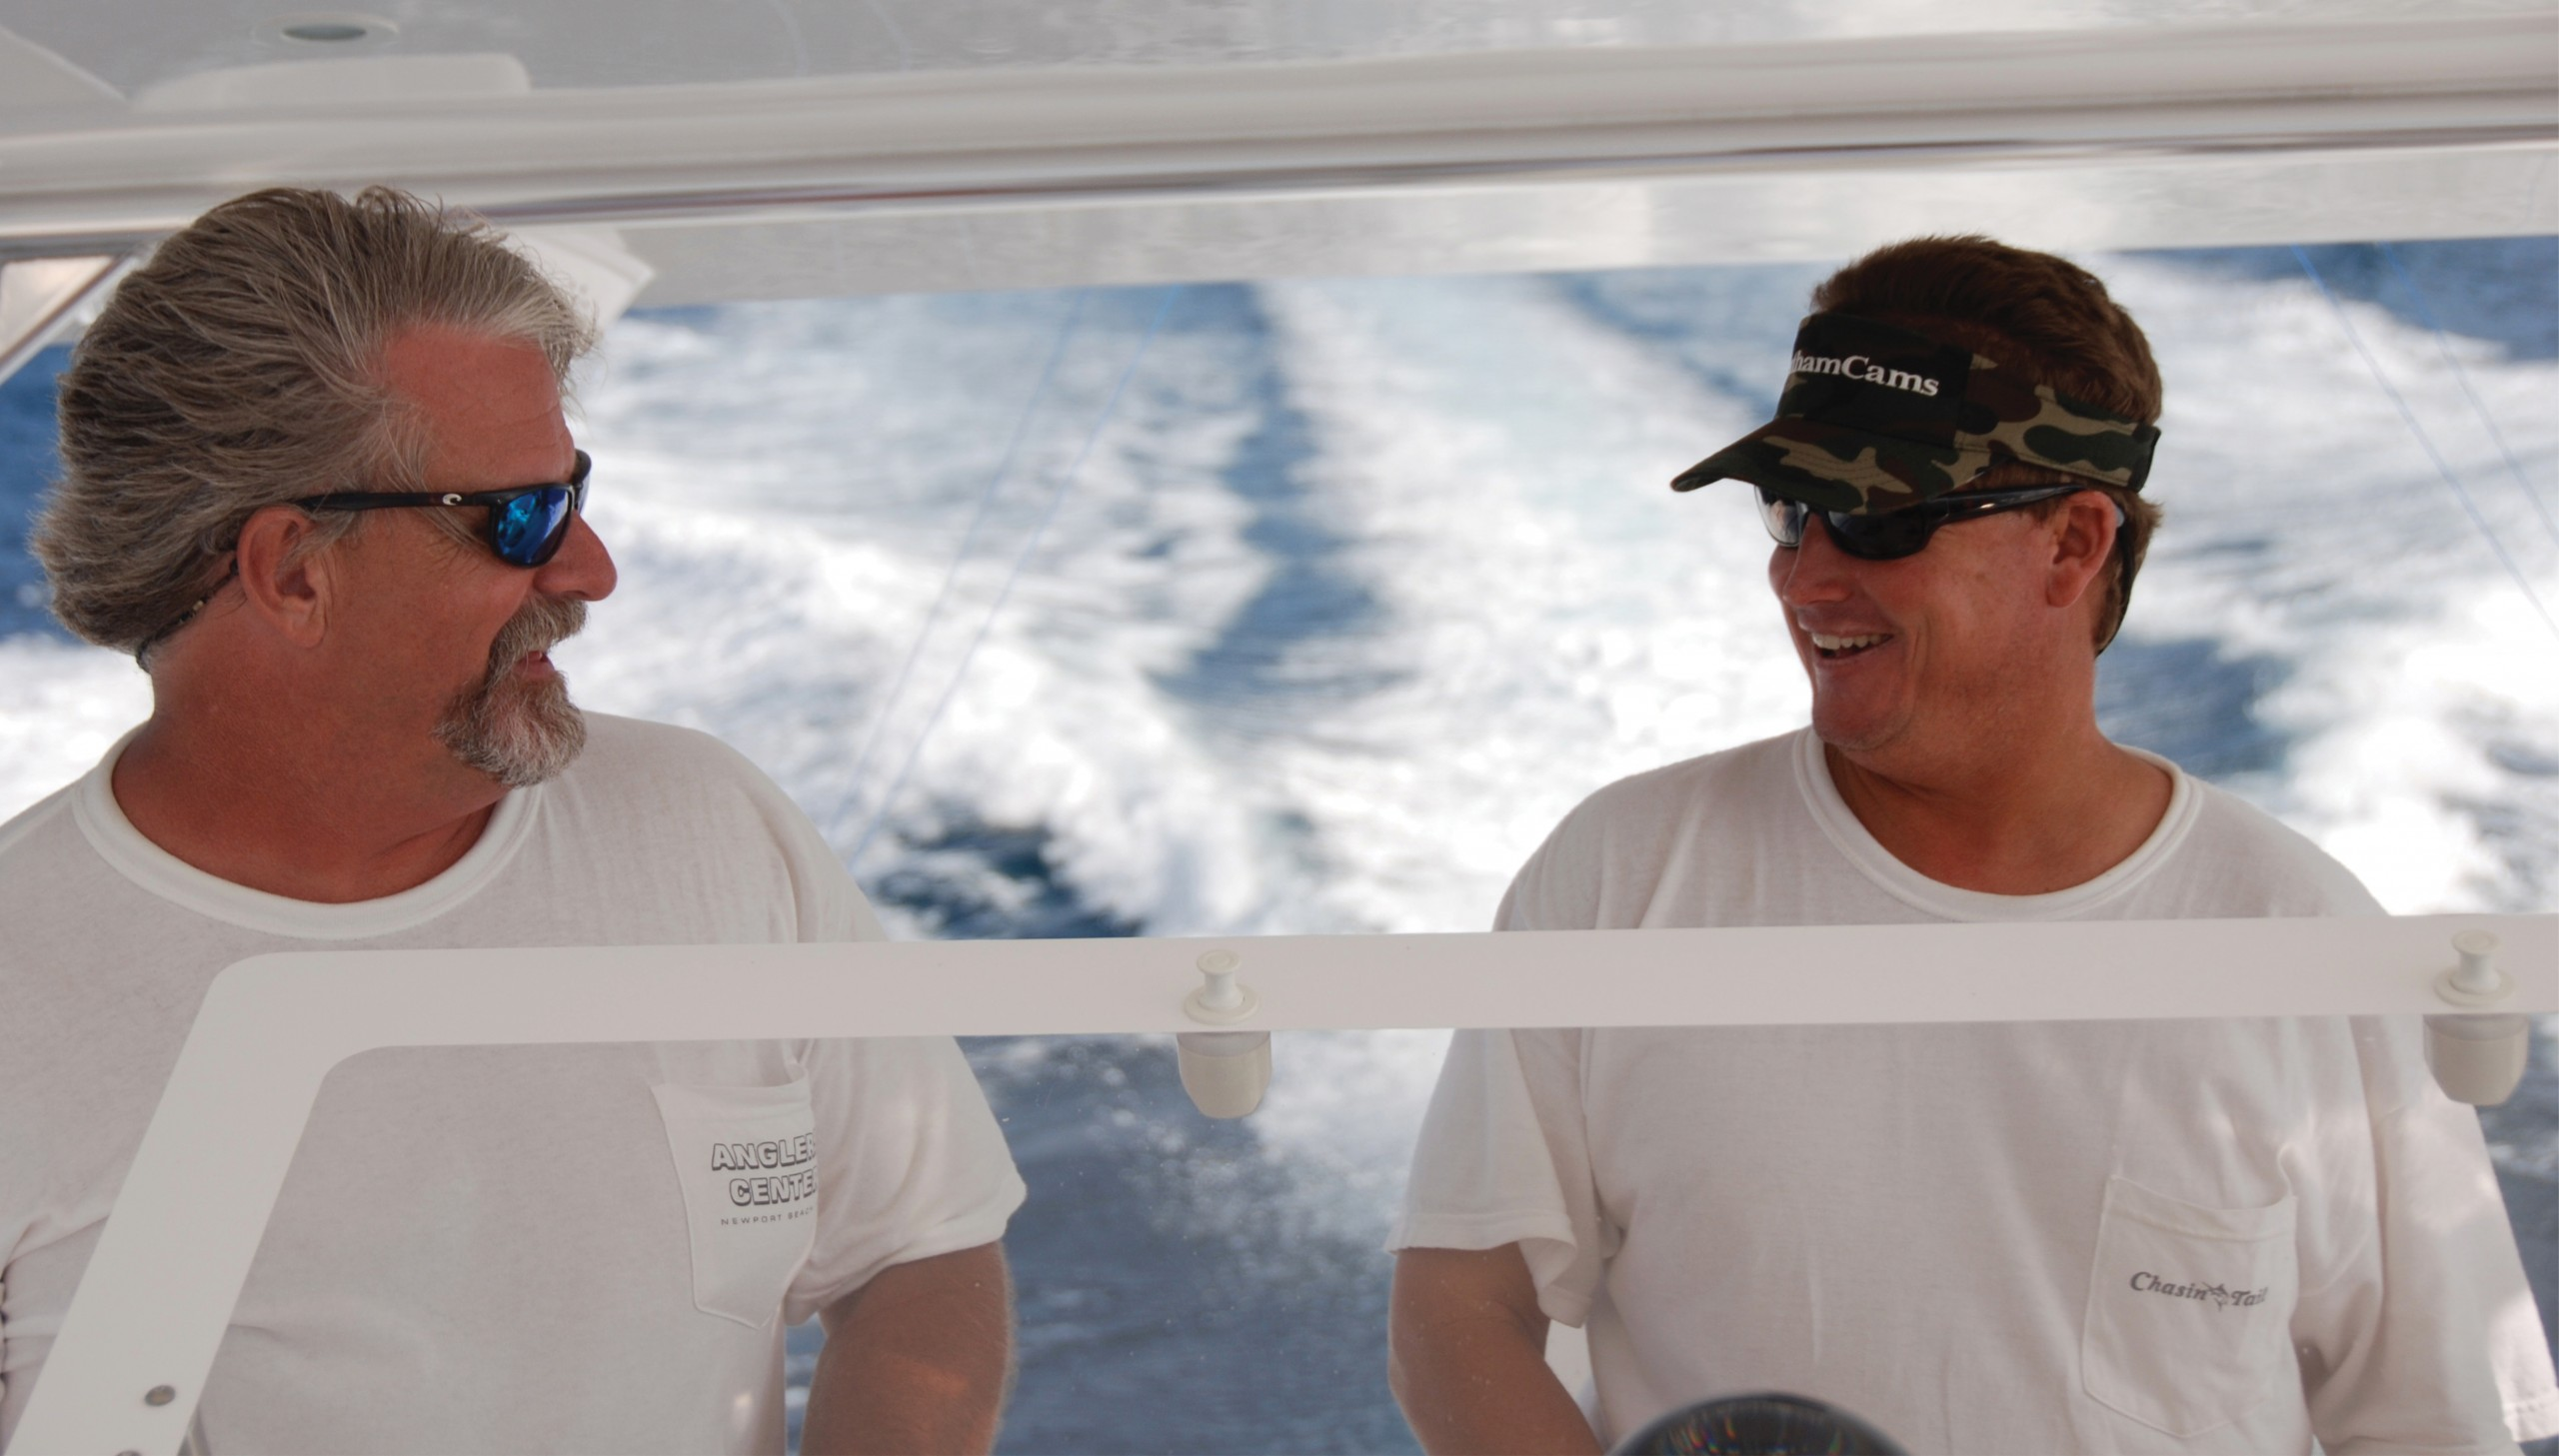 twos guys looking at each other in the bridge of a sportfishing boat